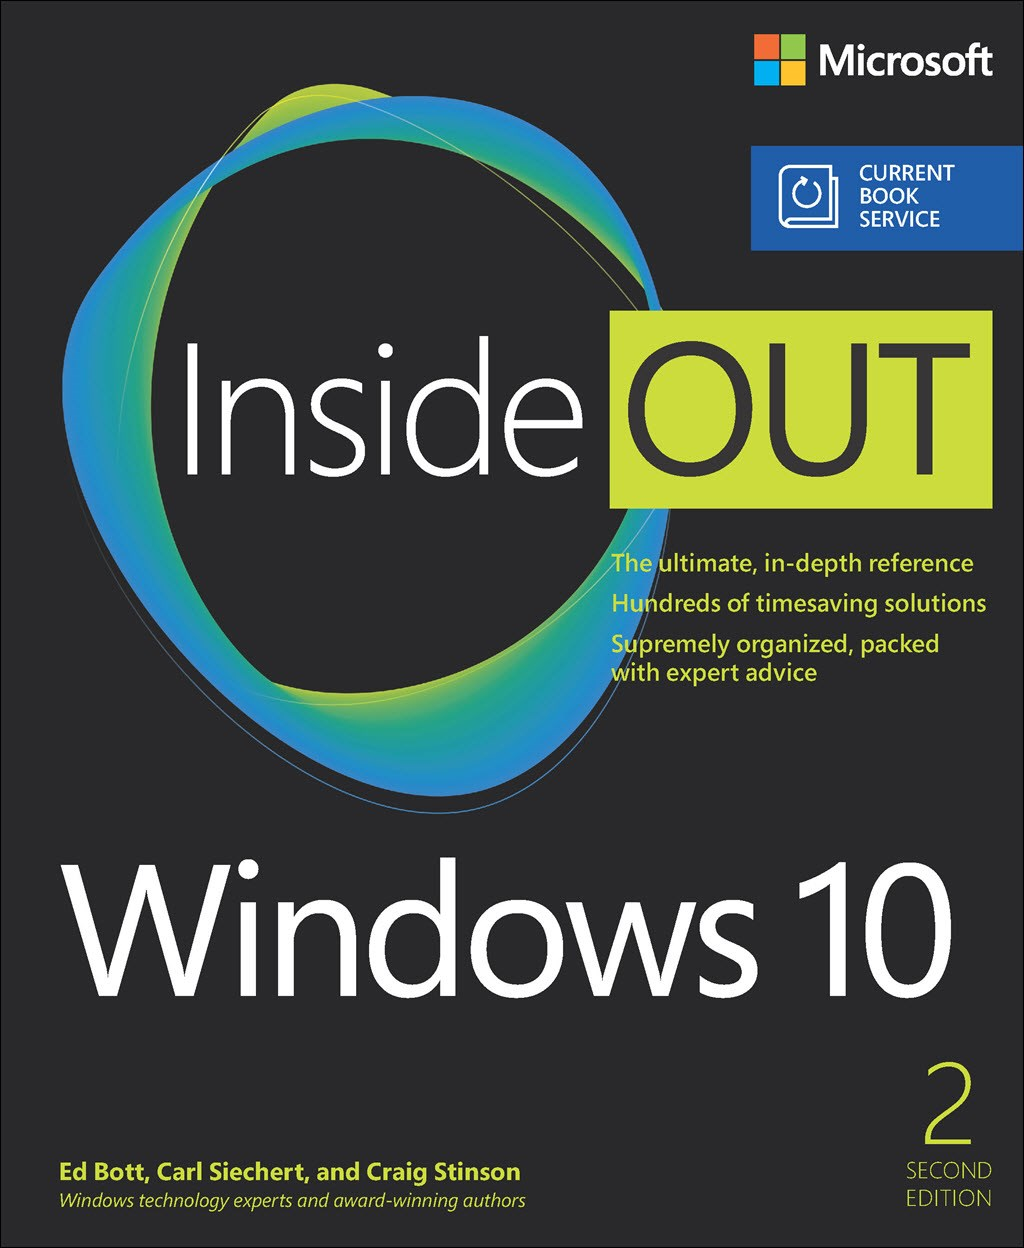 Windows 10 Inside Out (includes Current Book Service), 2nd Edition